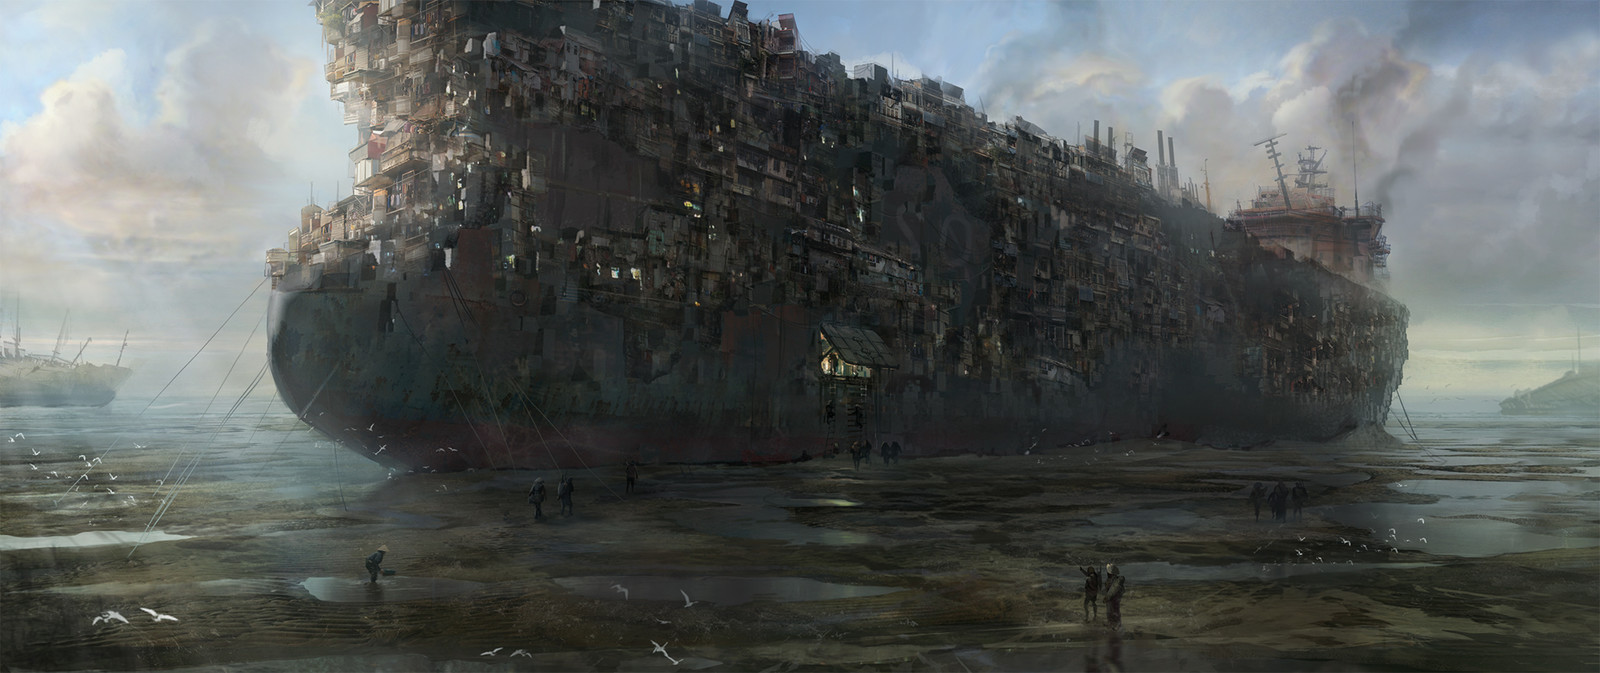 Shipwreck City